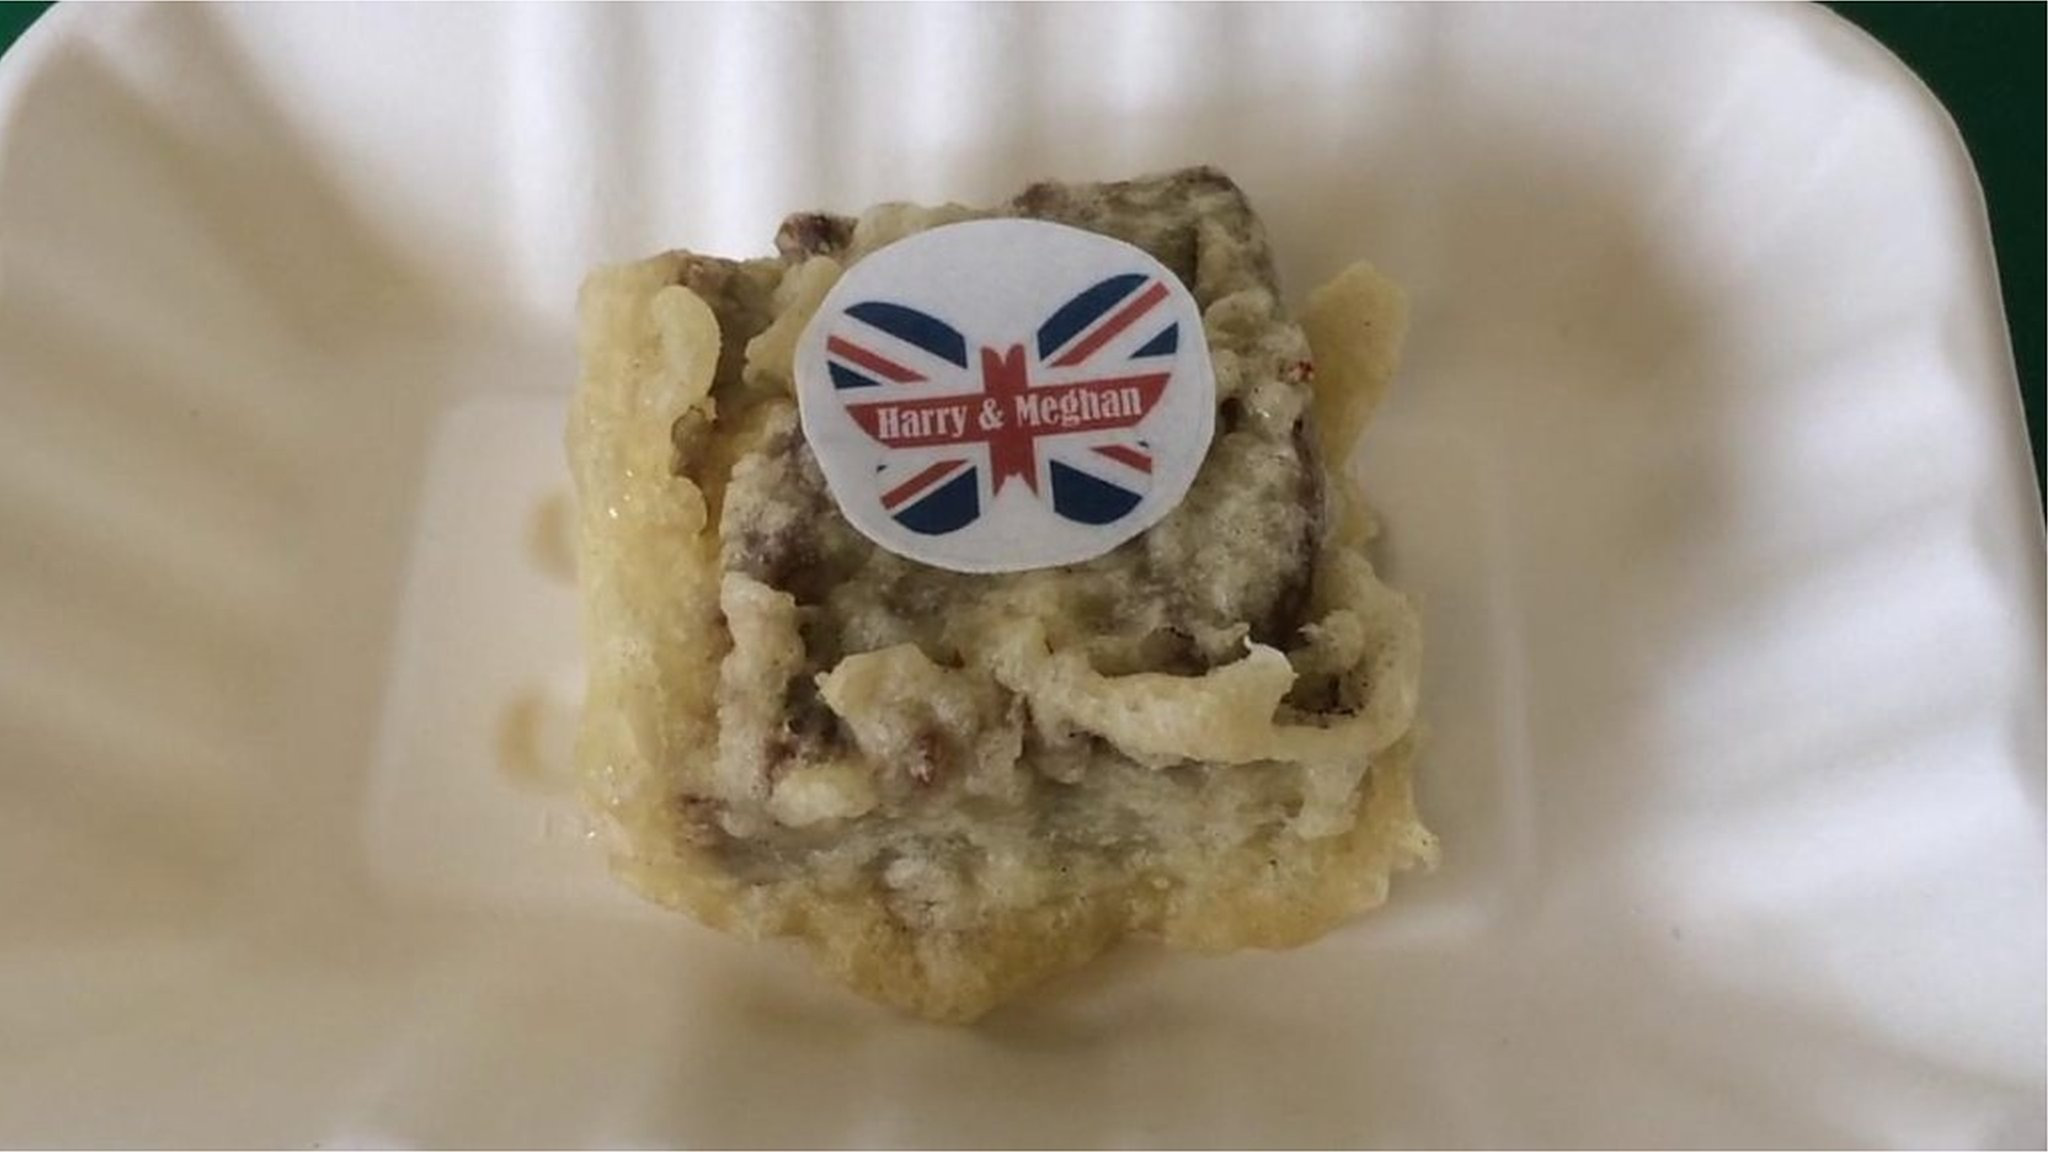 Royal wedding celebrated with battered fruit cake